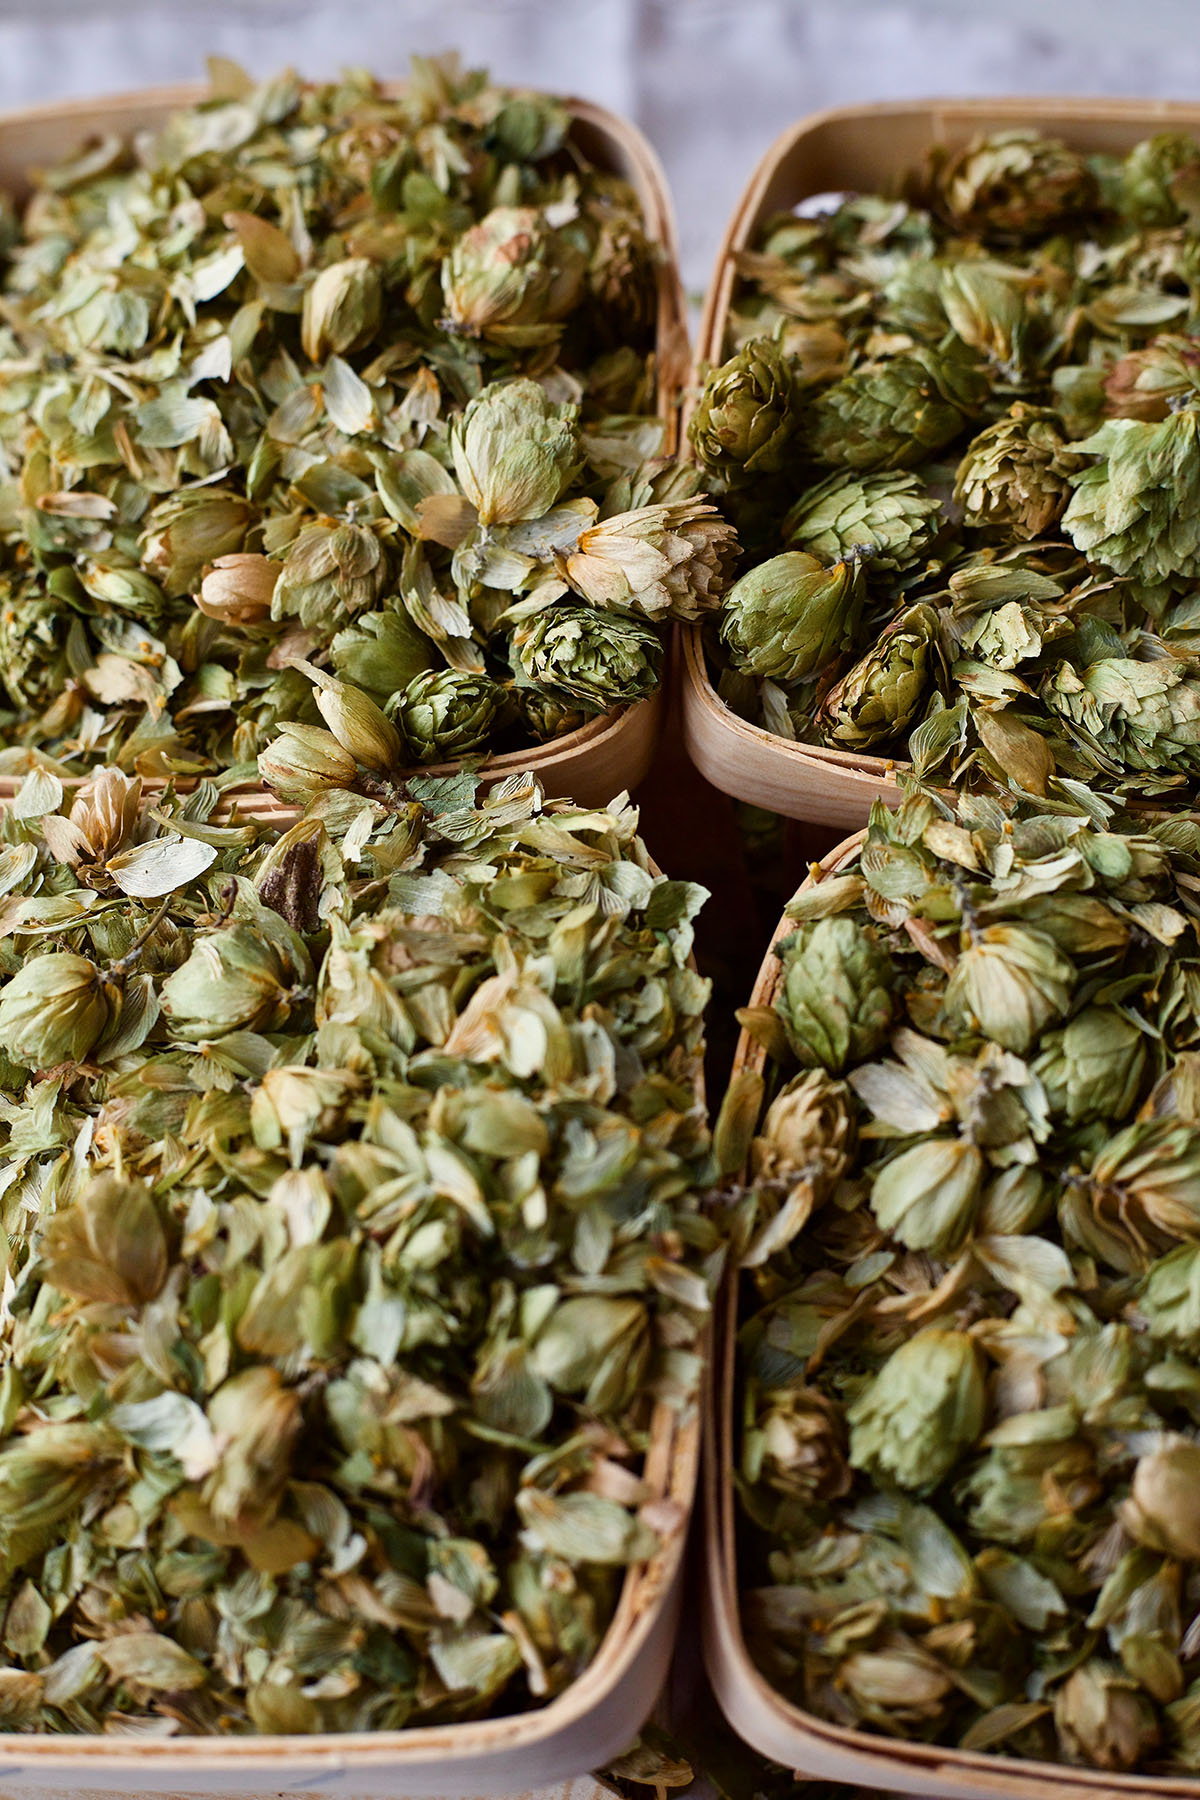 The Lure and Lore of HOPS: The 2018 Herb of the Year | Herbal Academy | In this post you'll find information about cultivating and harvesting hops as well as some interesting lure and lore about this year's Herb of the Year.